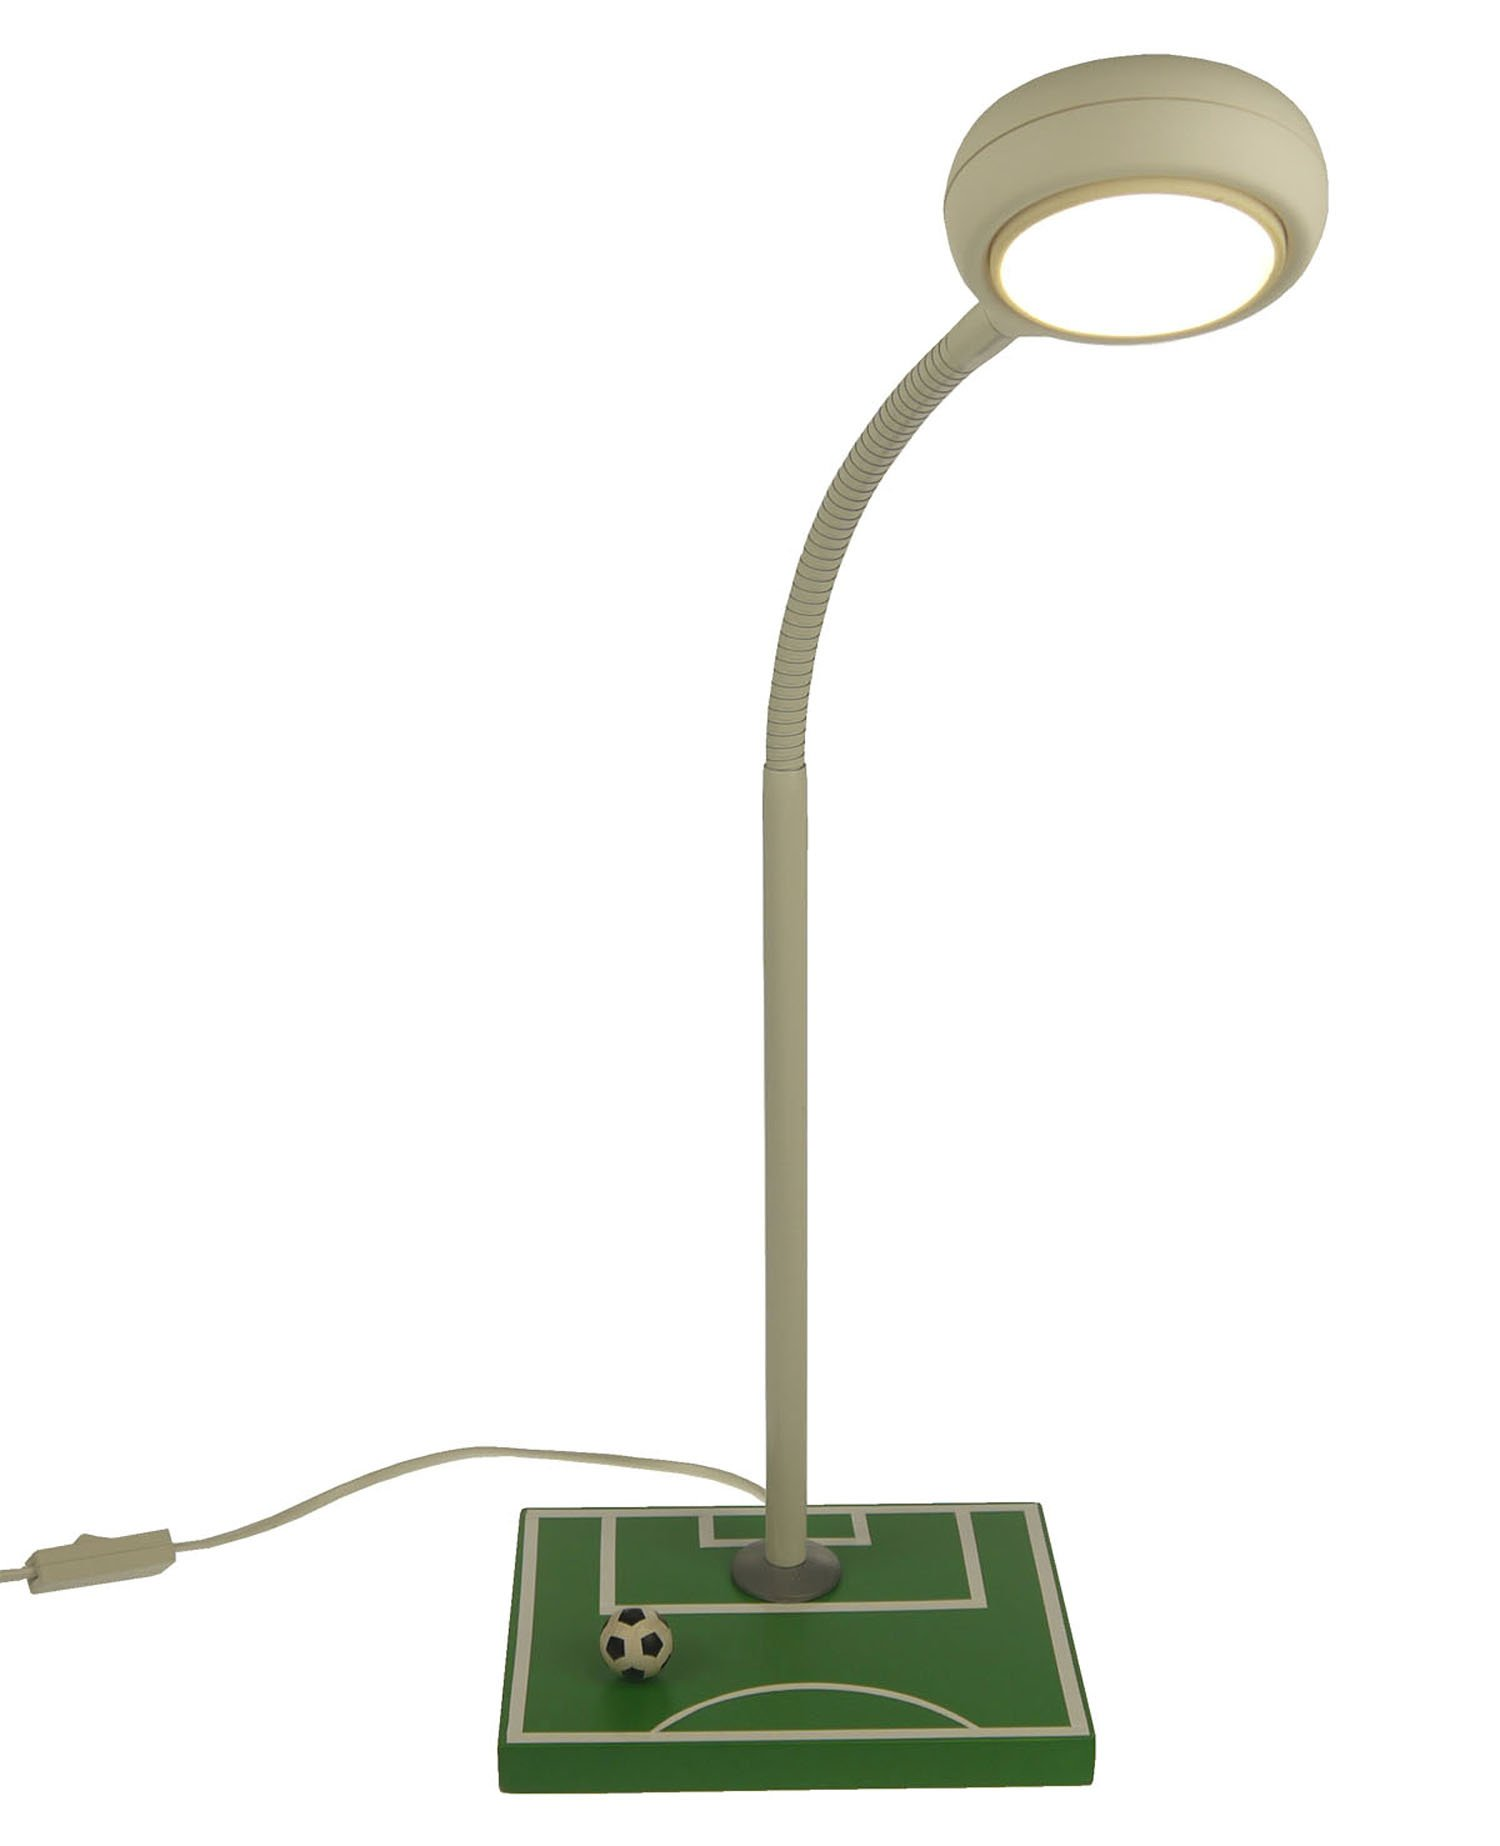 Niermann Standby Table Lamp, Soccer Field by Niermann Standby